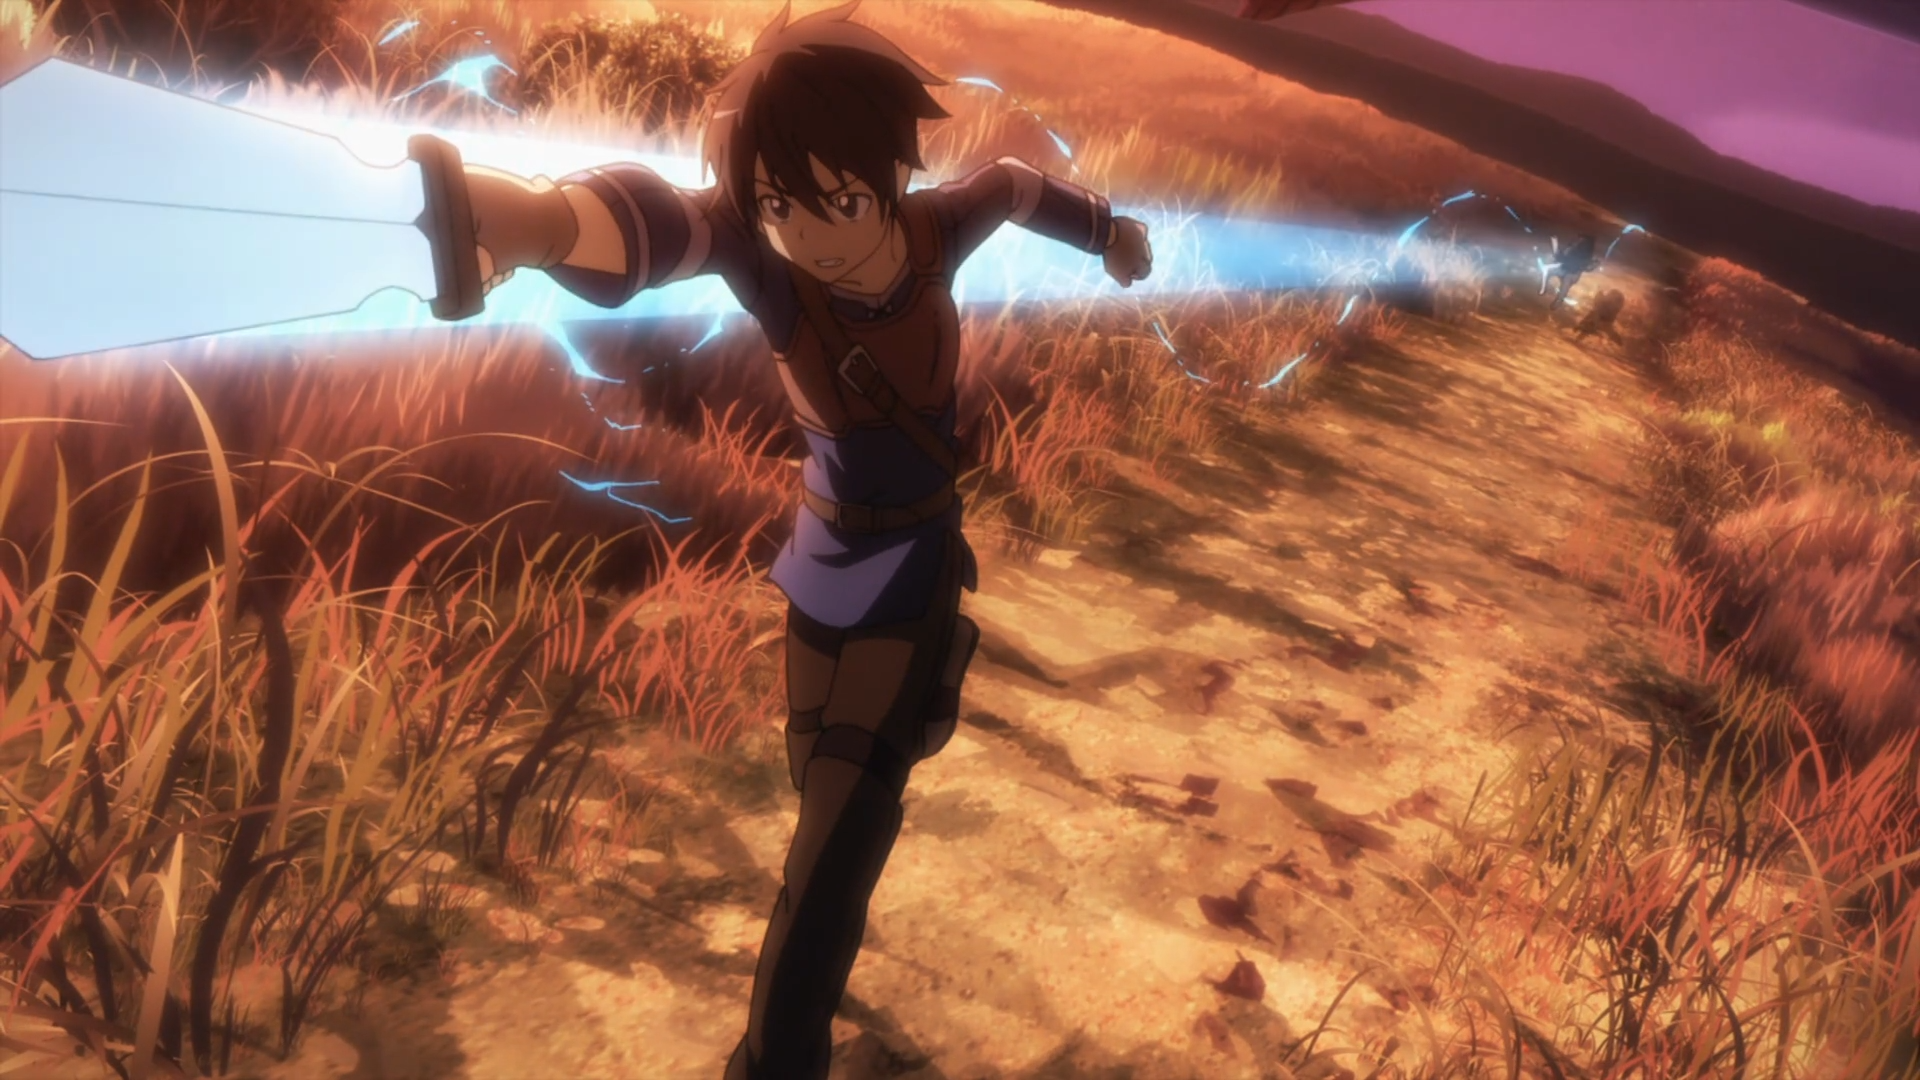 Sword Skills | Sword Art Online Wiki | FANDOM powered by Wikia